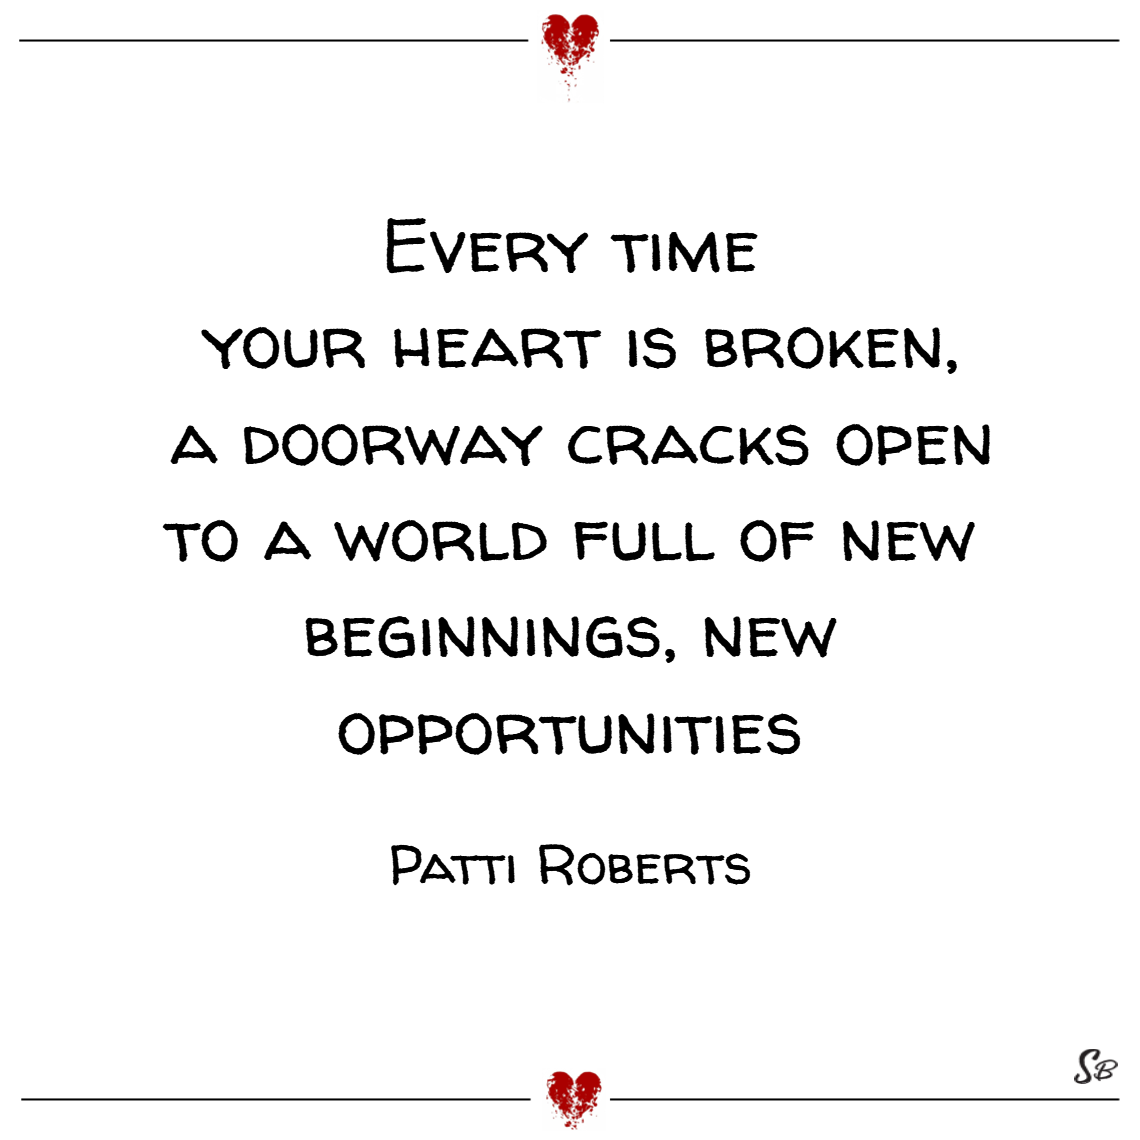 Every time your heart is broken, a doorway cracks open to a world full of new beginnings, new opportunities. – patti roberts